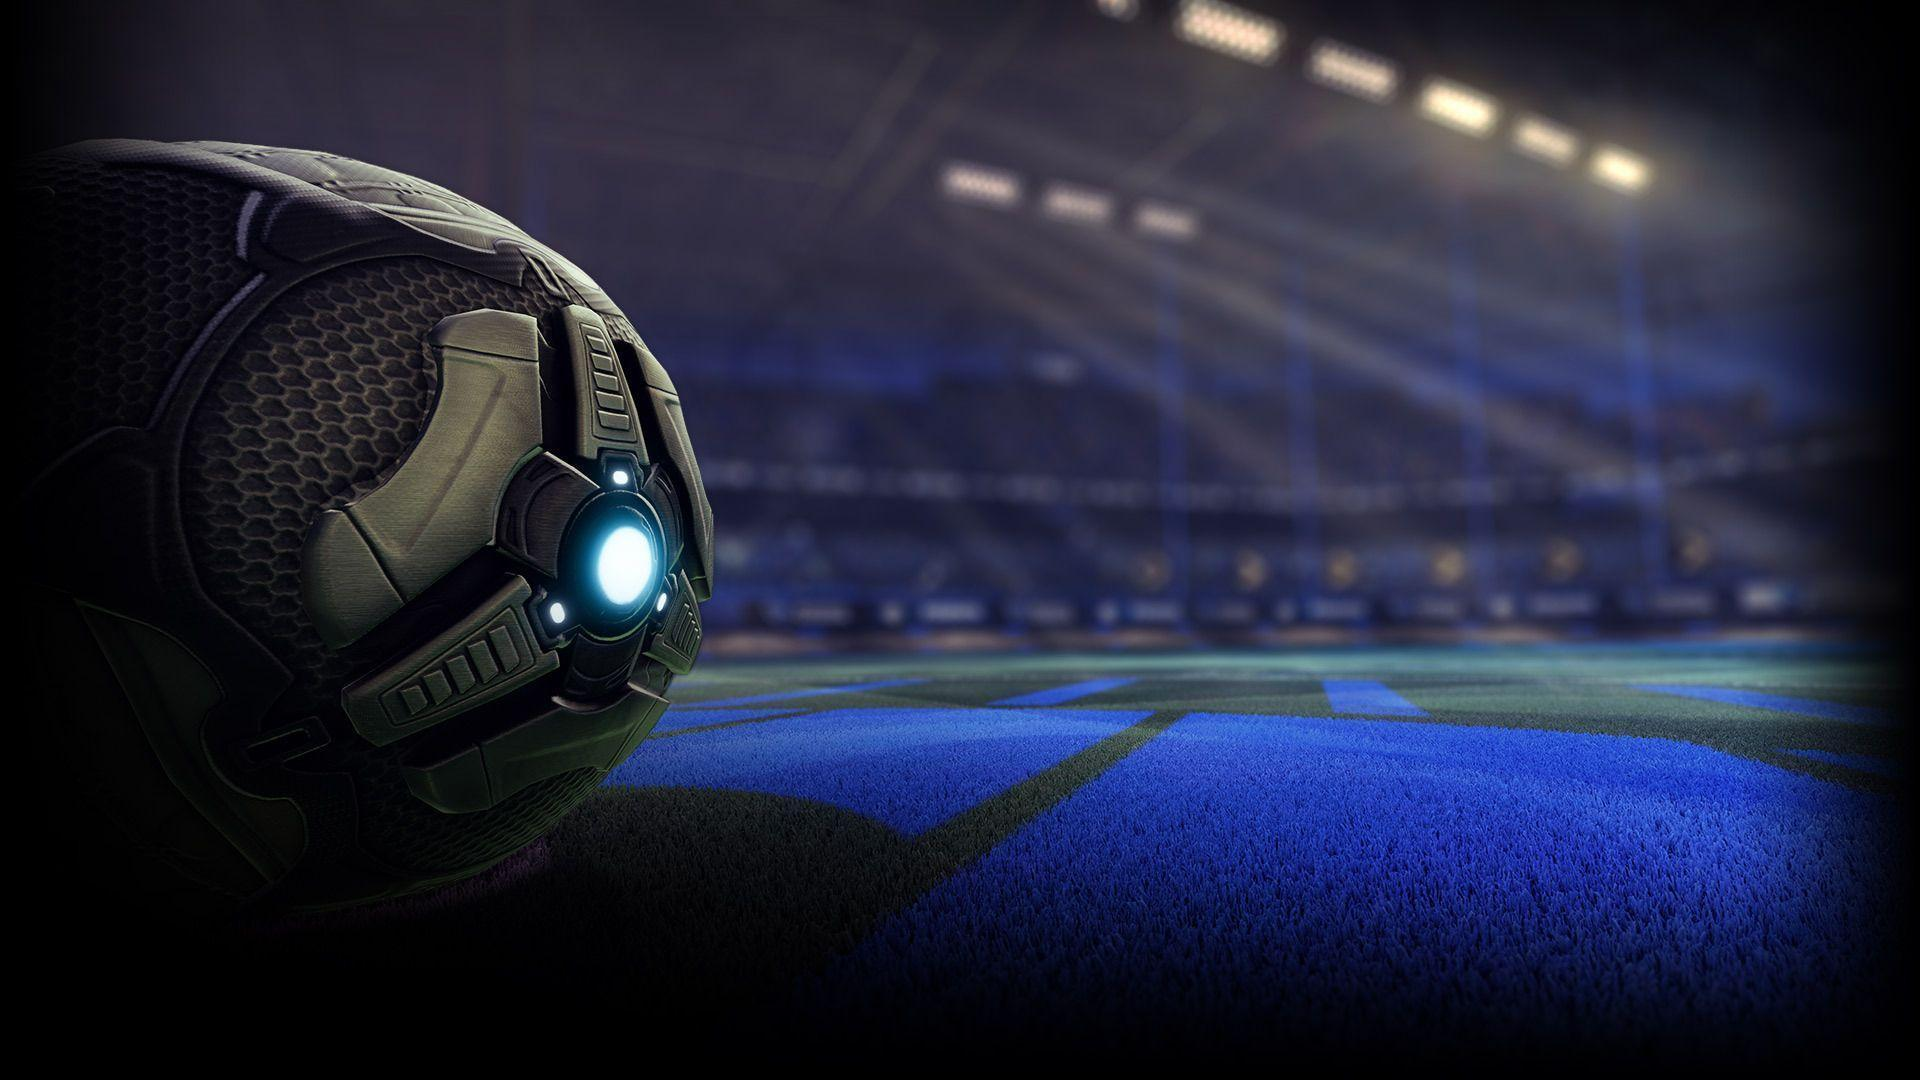 Rocket League Wallpapers Wallpaper Cave